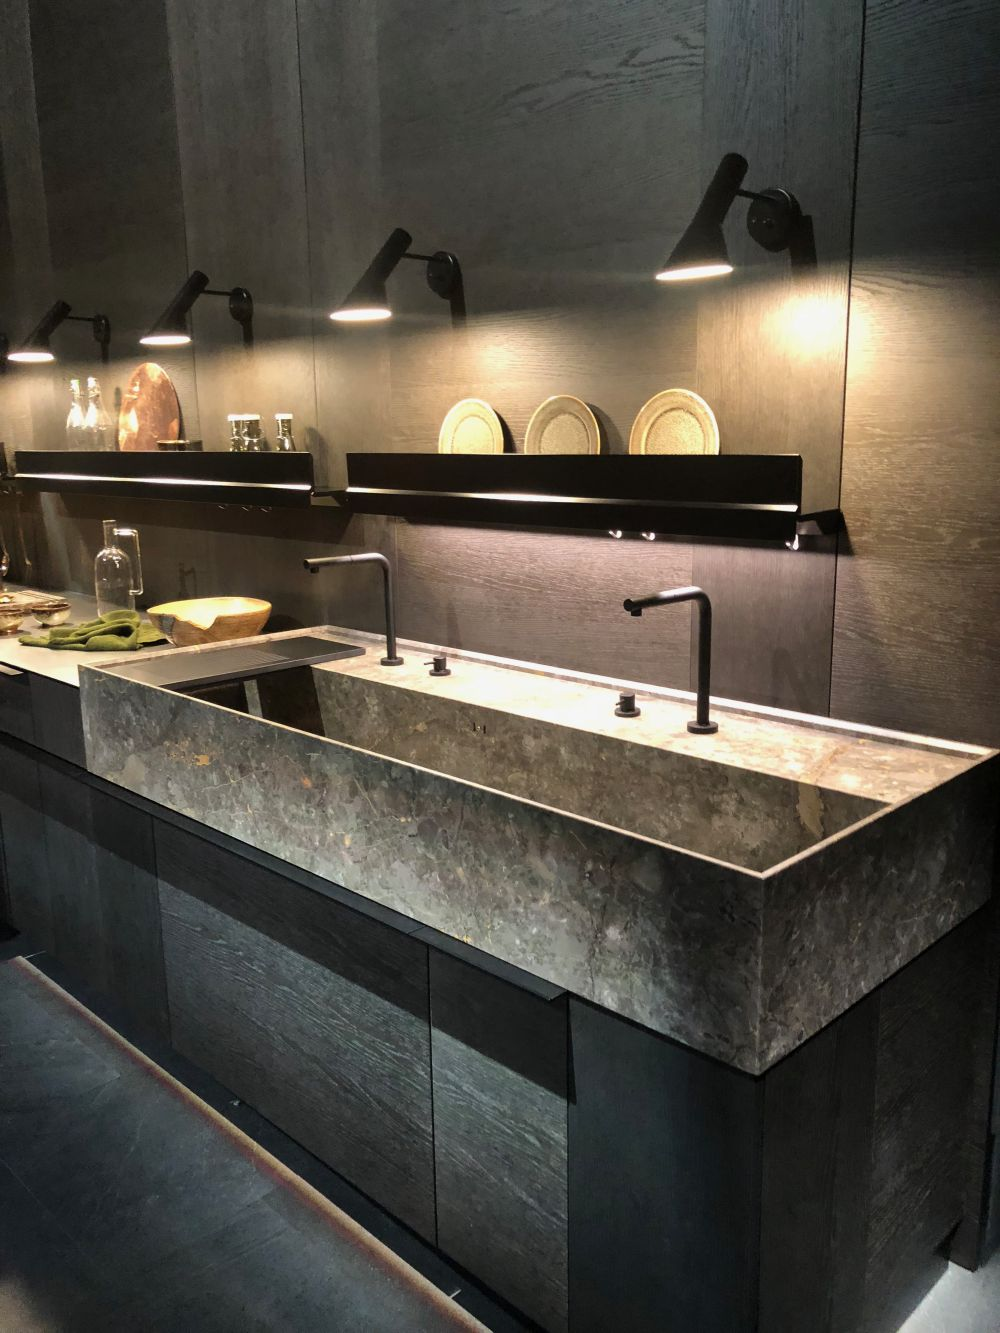 exclusive sink and cabinets in ultramodern kitchen | EuroCucina 2018 Shows New Trends For Modern And Luxury ...